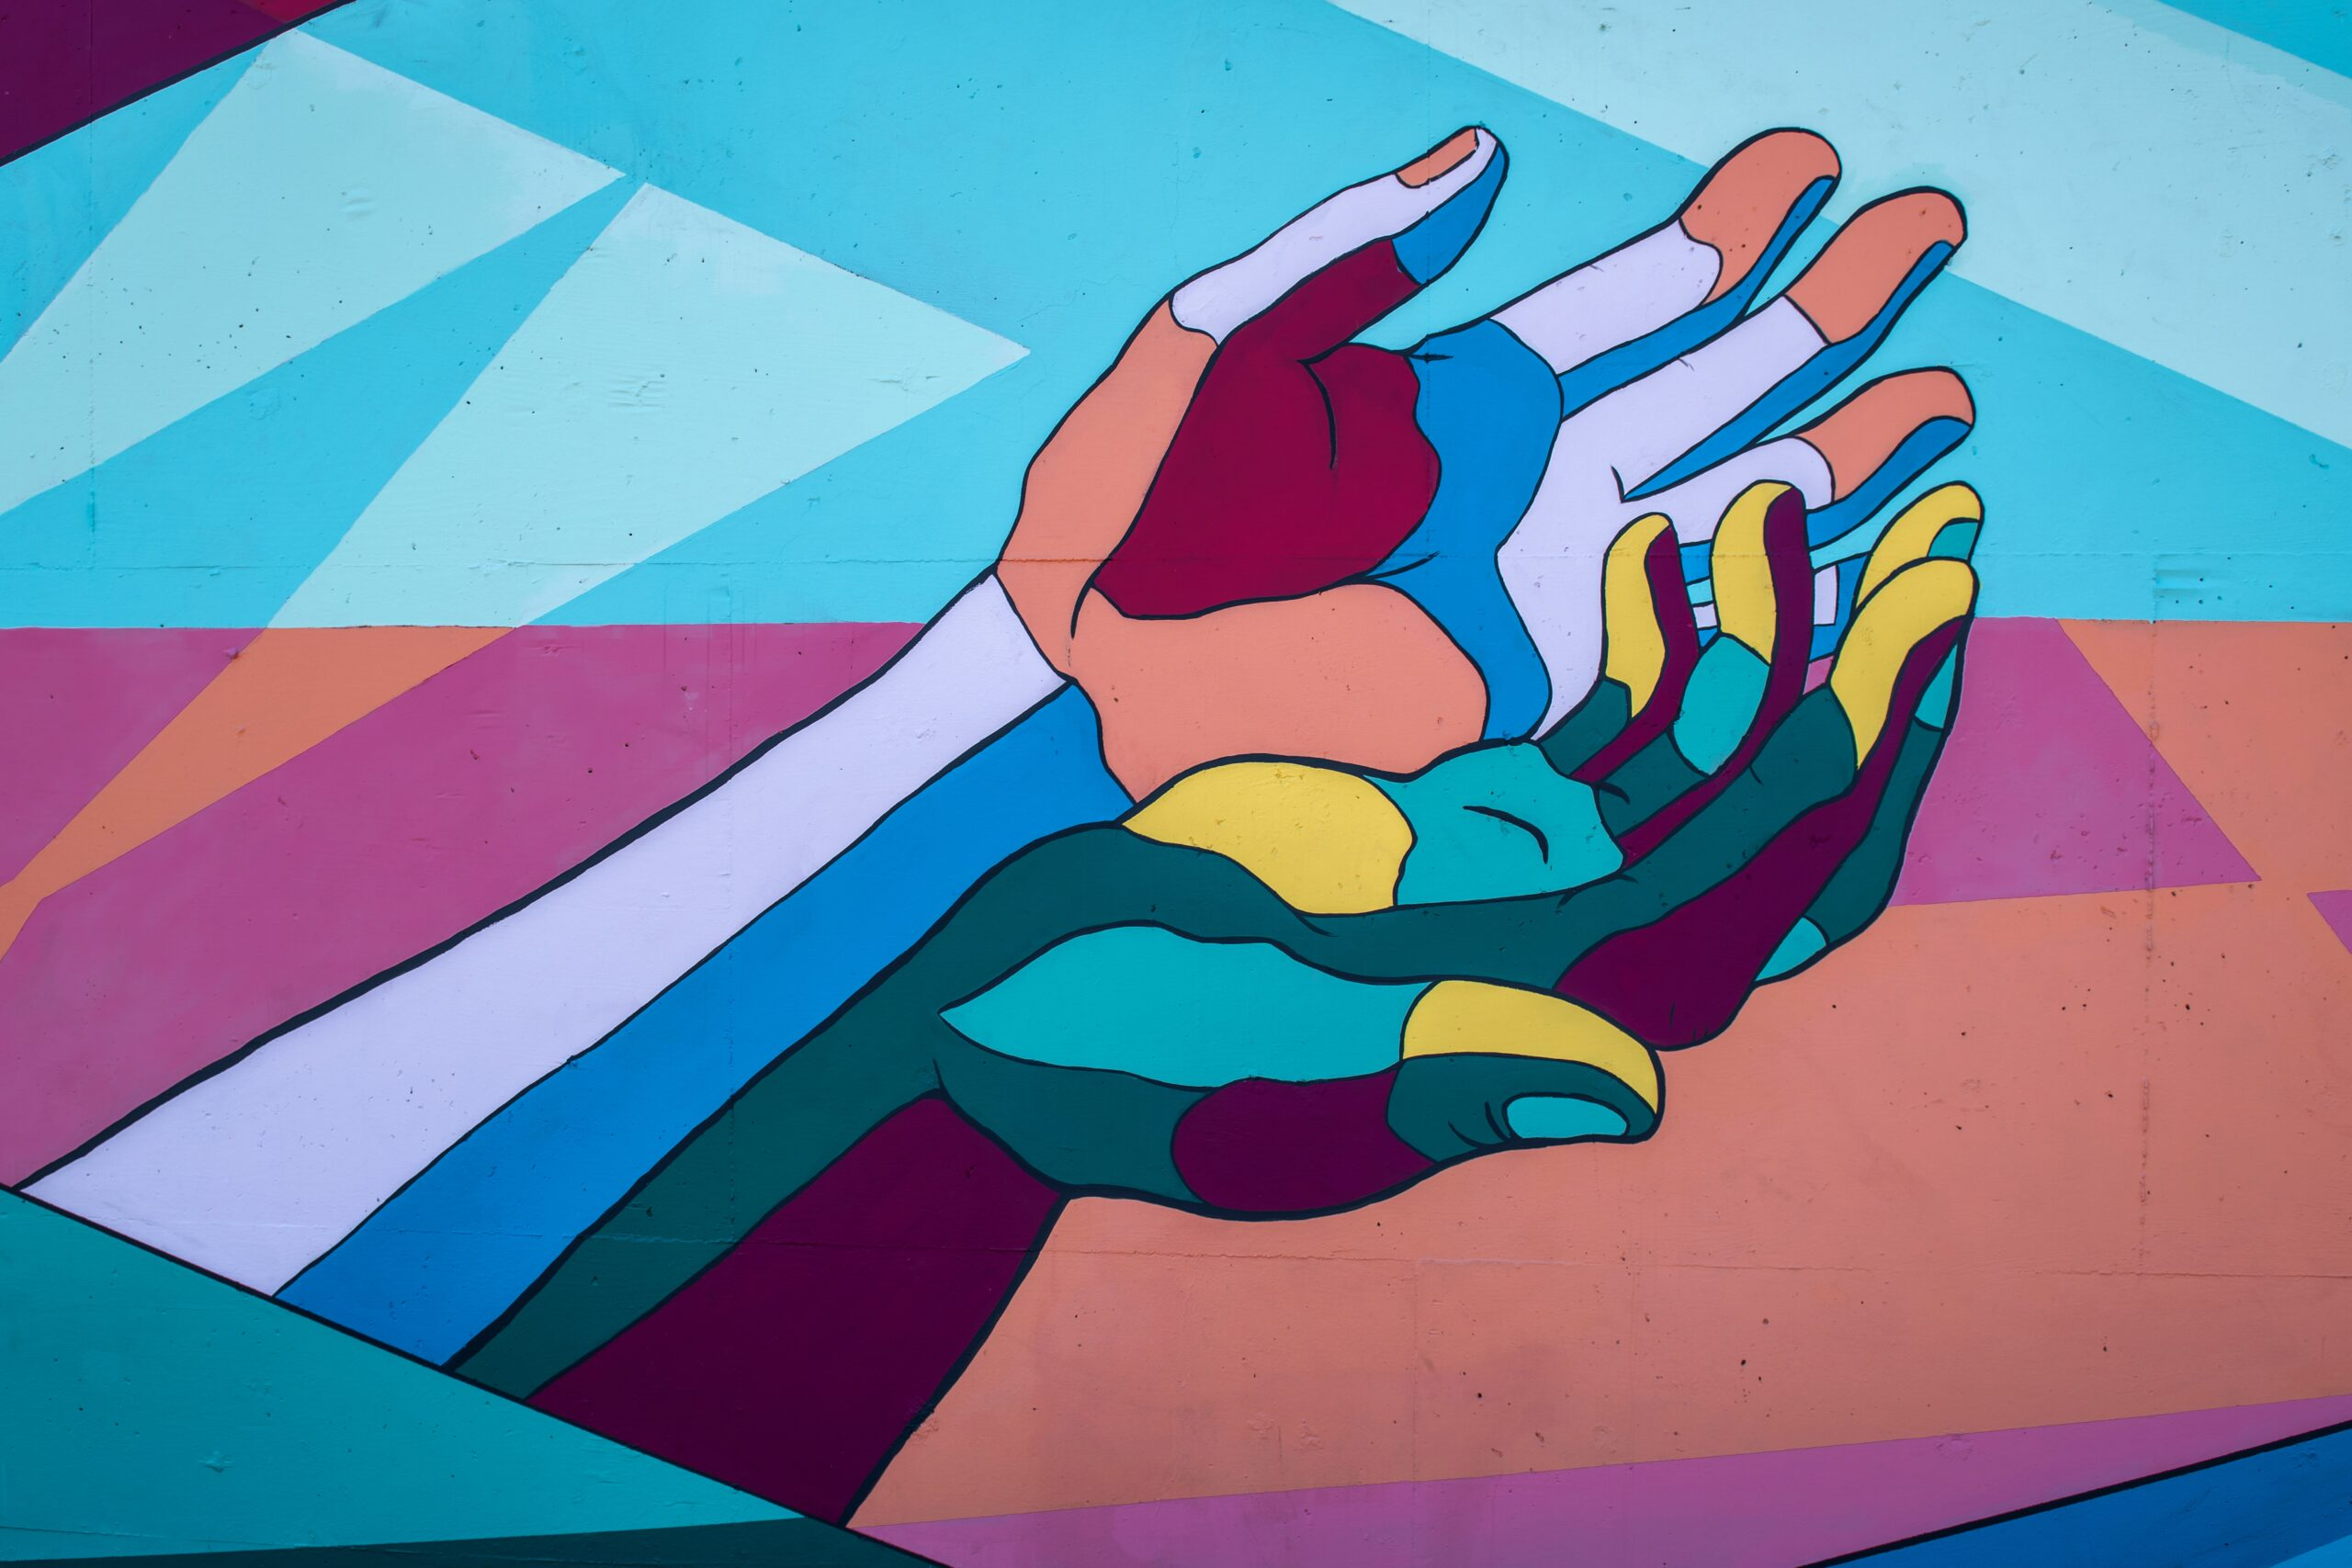 Graphic of a red and blue abstract hand being held by a green, yellow and red hand, with blue and pink blocky shapes in the background.